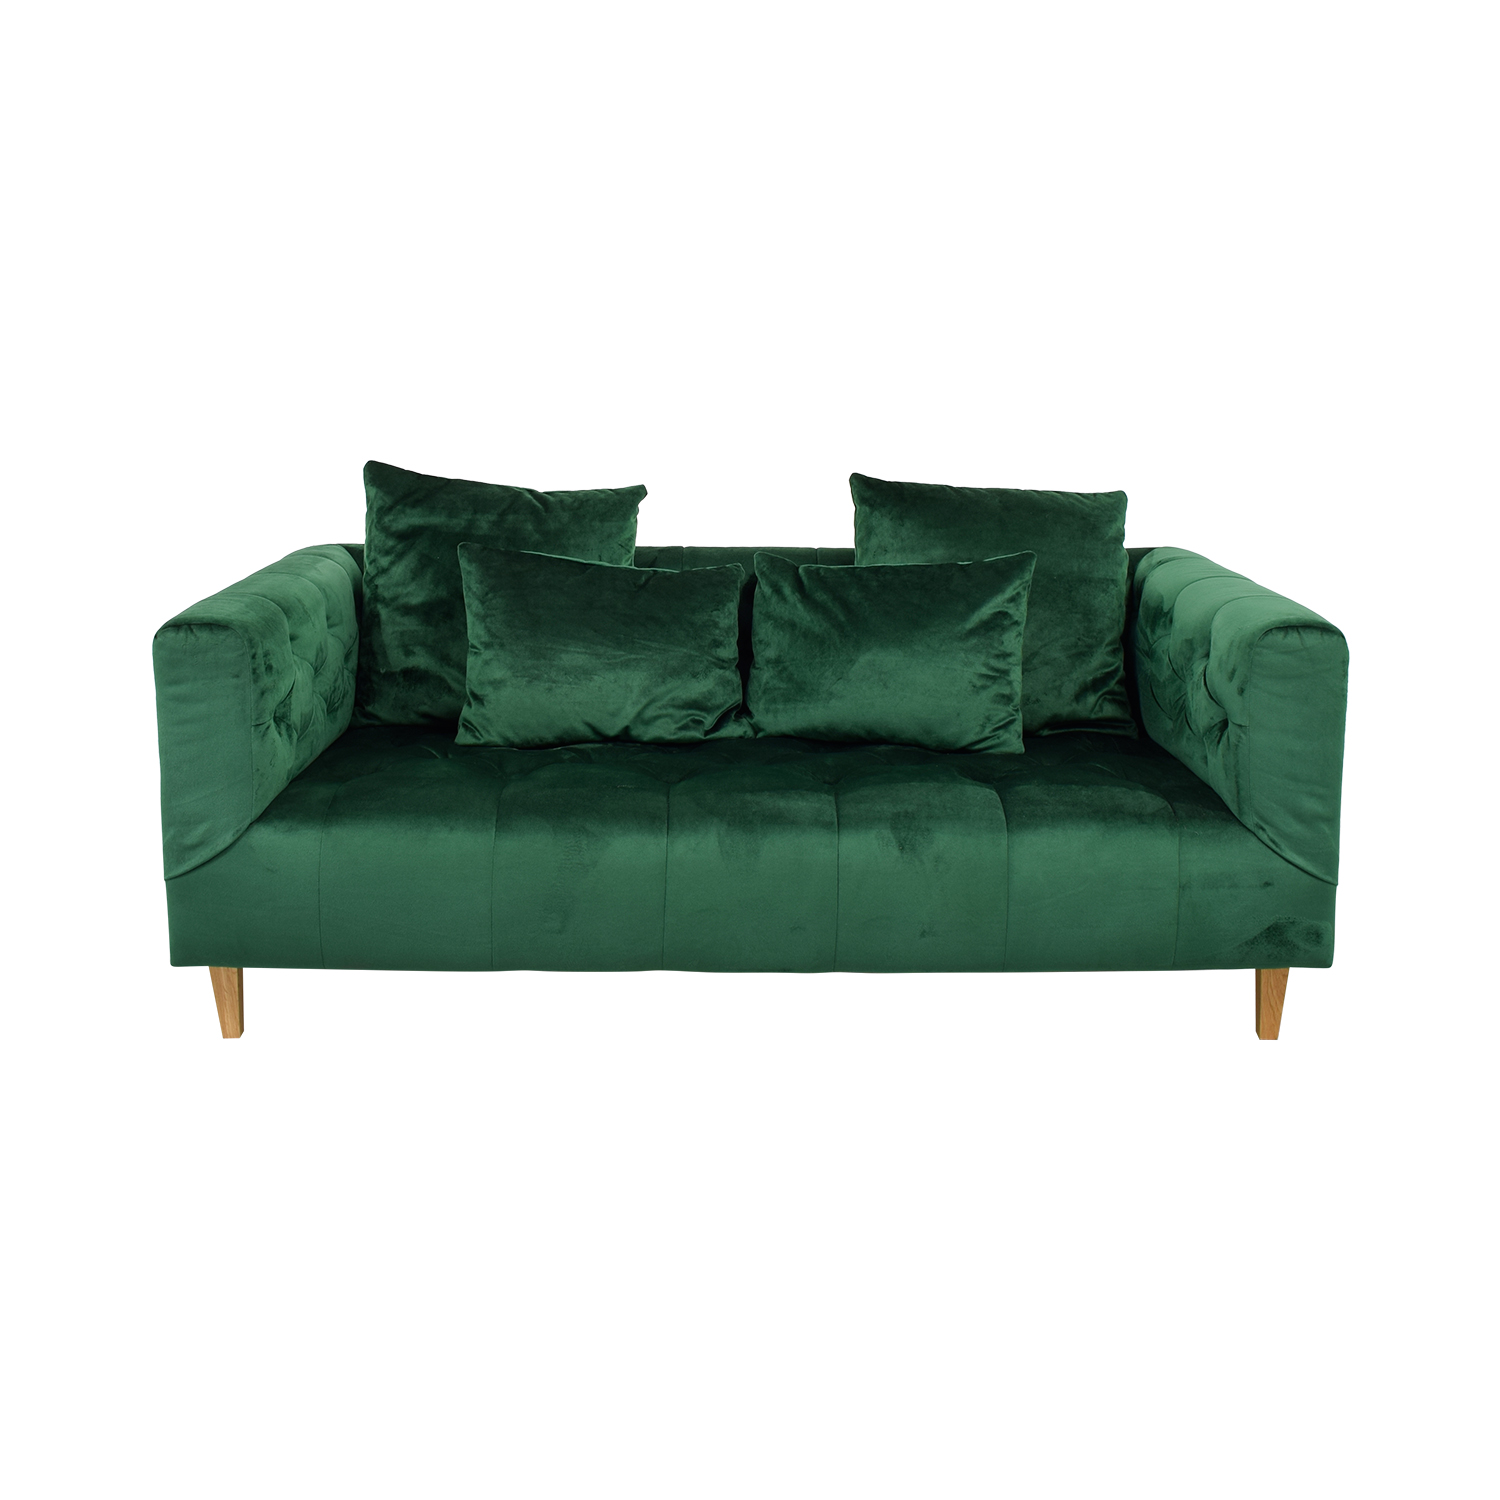 Ms Chesterfield Green Tufted Sofa Used